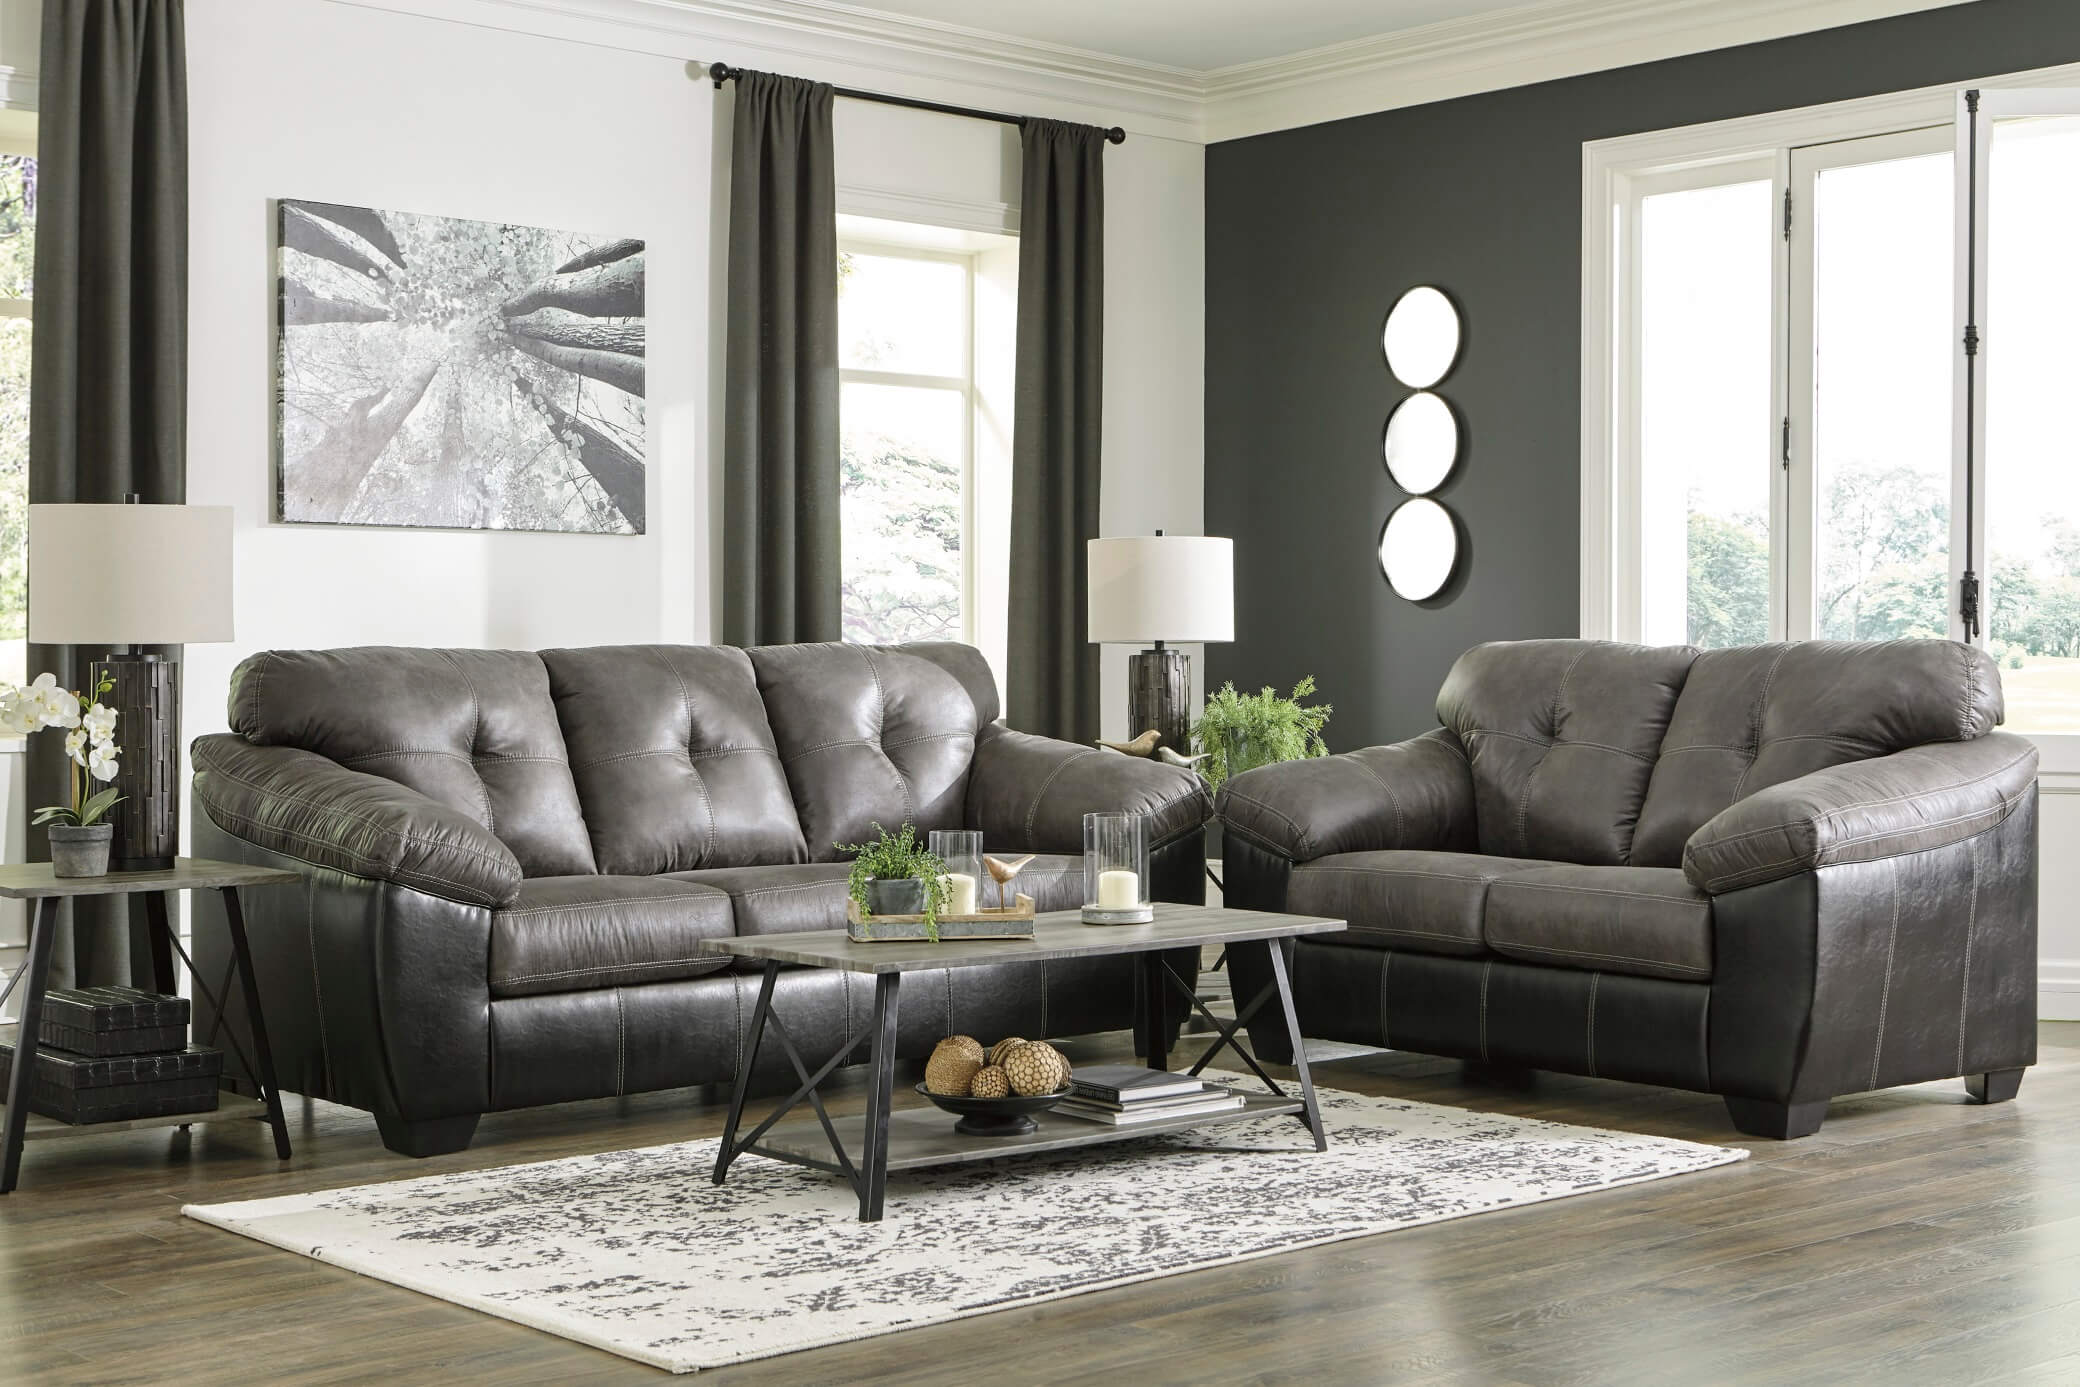 Gregale Slate Set Recliners Urban Furniture Outlet